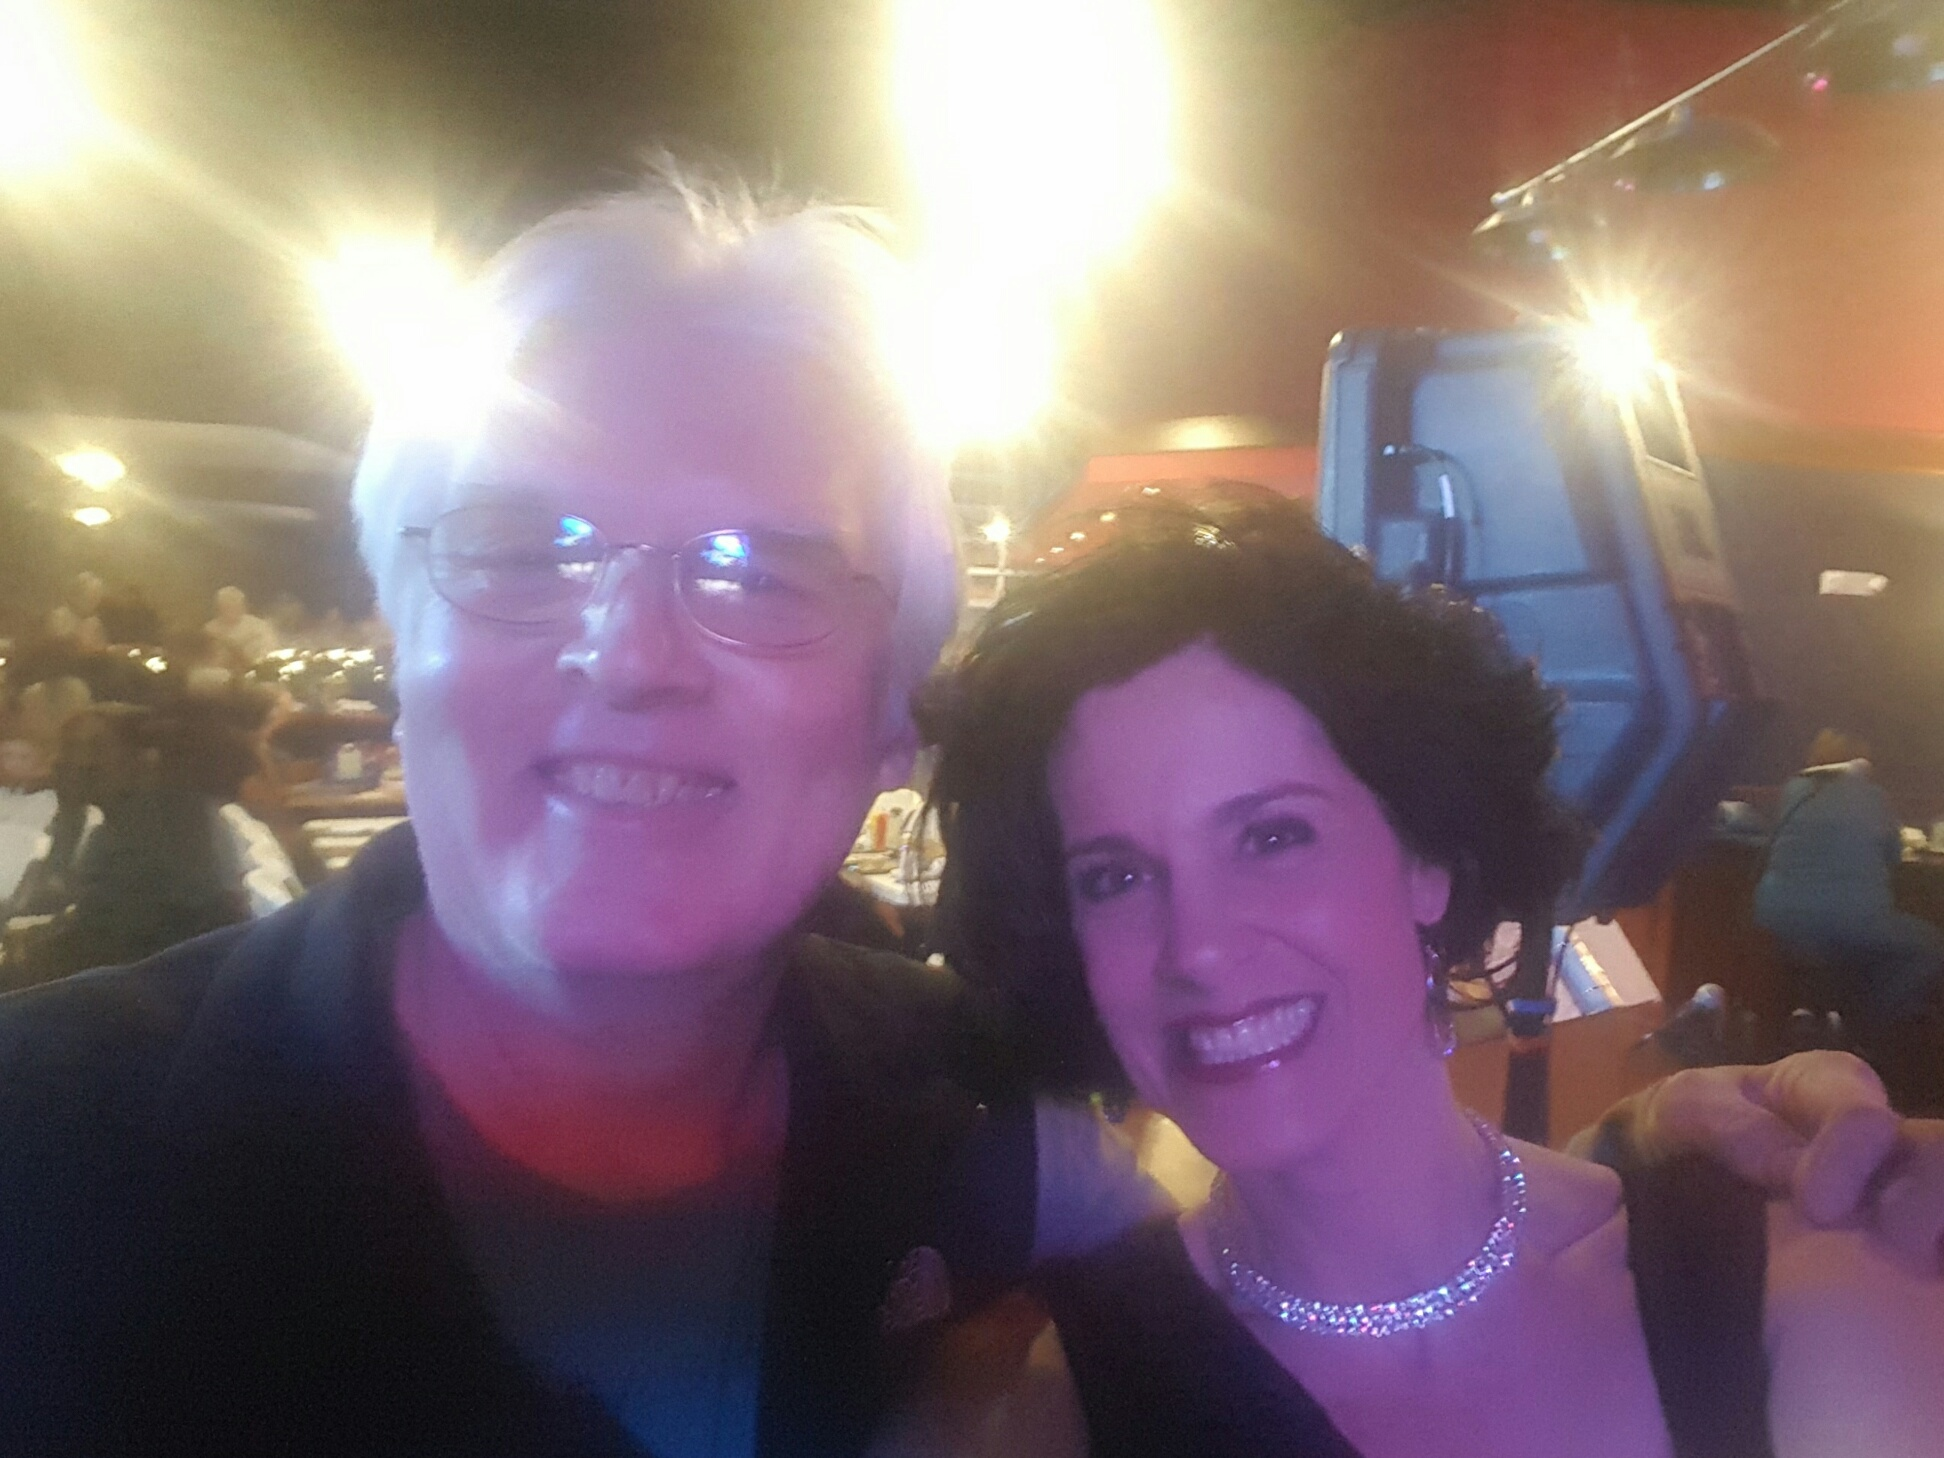 Marv Topp and Amy Manette